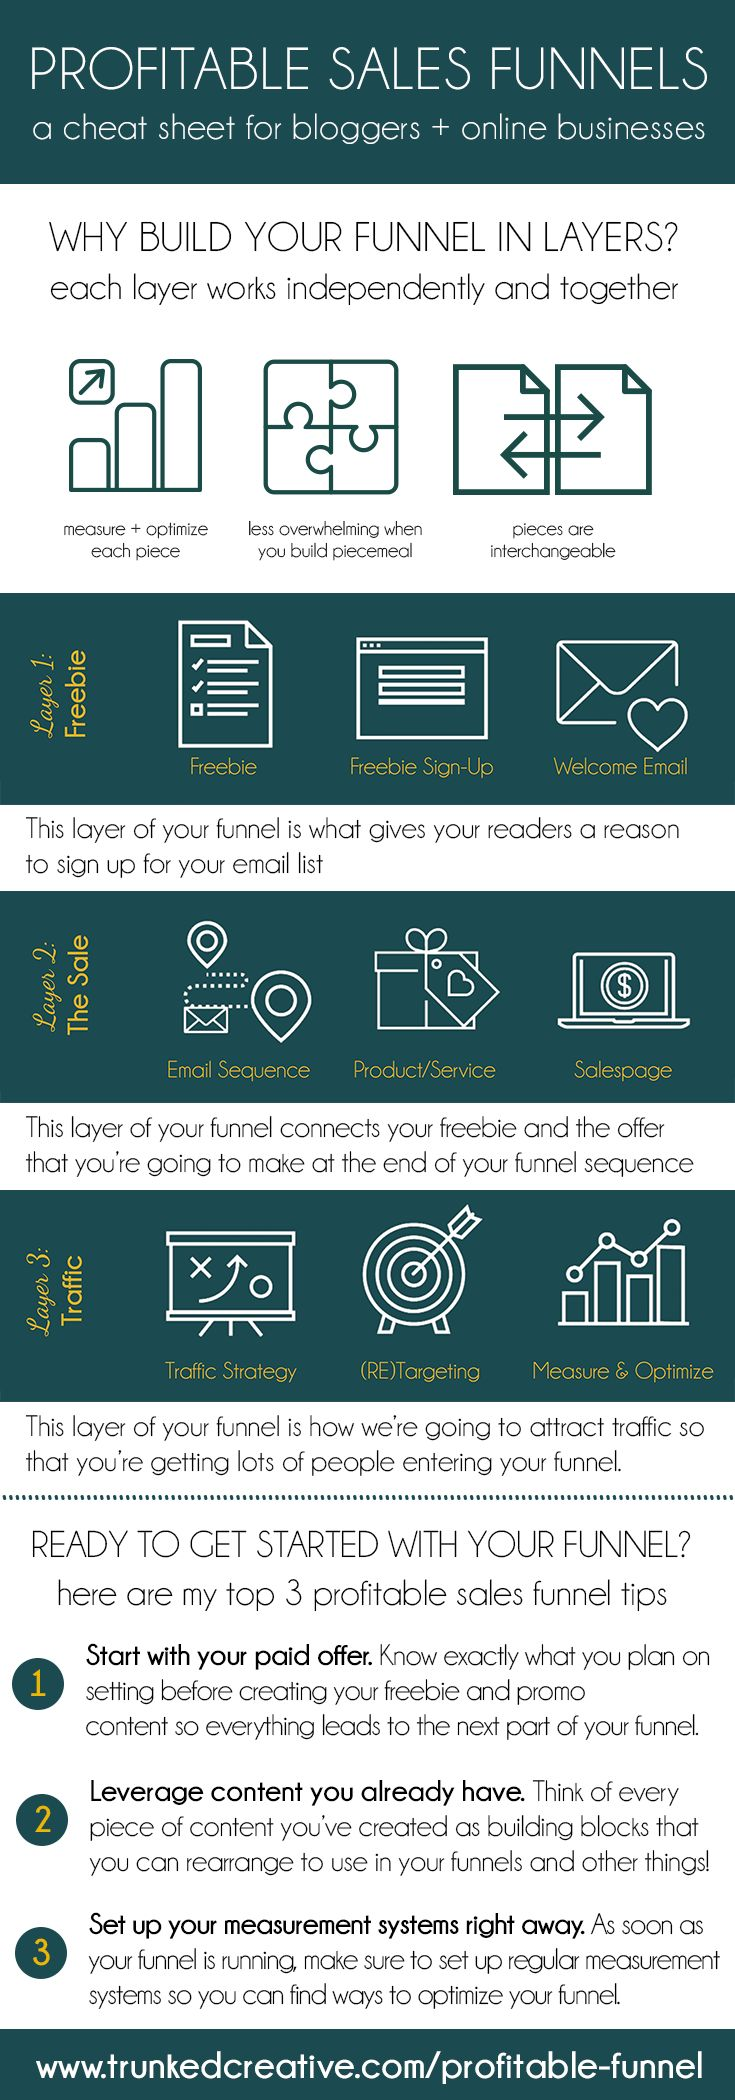 The cheat sheet to a profitable sales funnel for your blog or business! Learn how to reach the right people, effortlessly drive traffic and sales, and secure passive income easily and without overwhelm. From Hailey Dale of Trunked Creative.